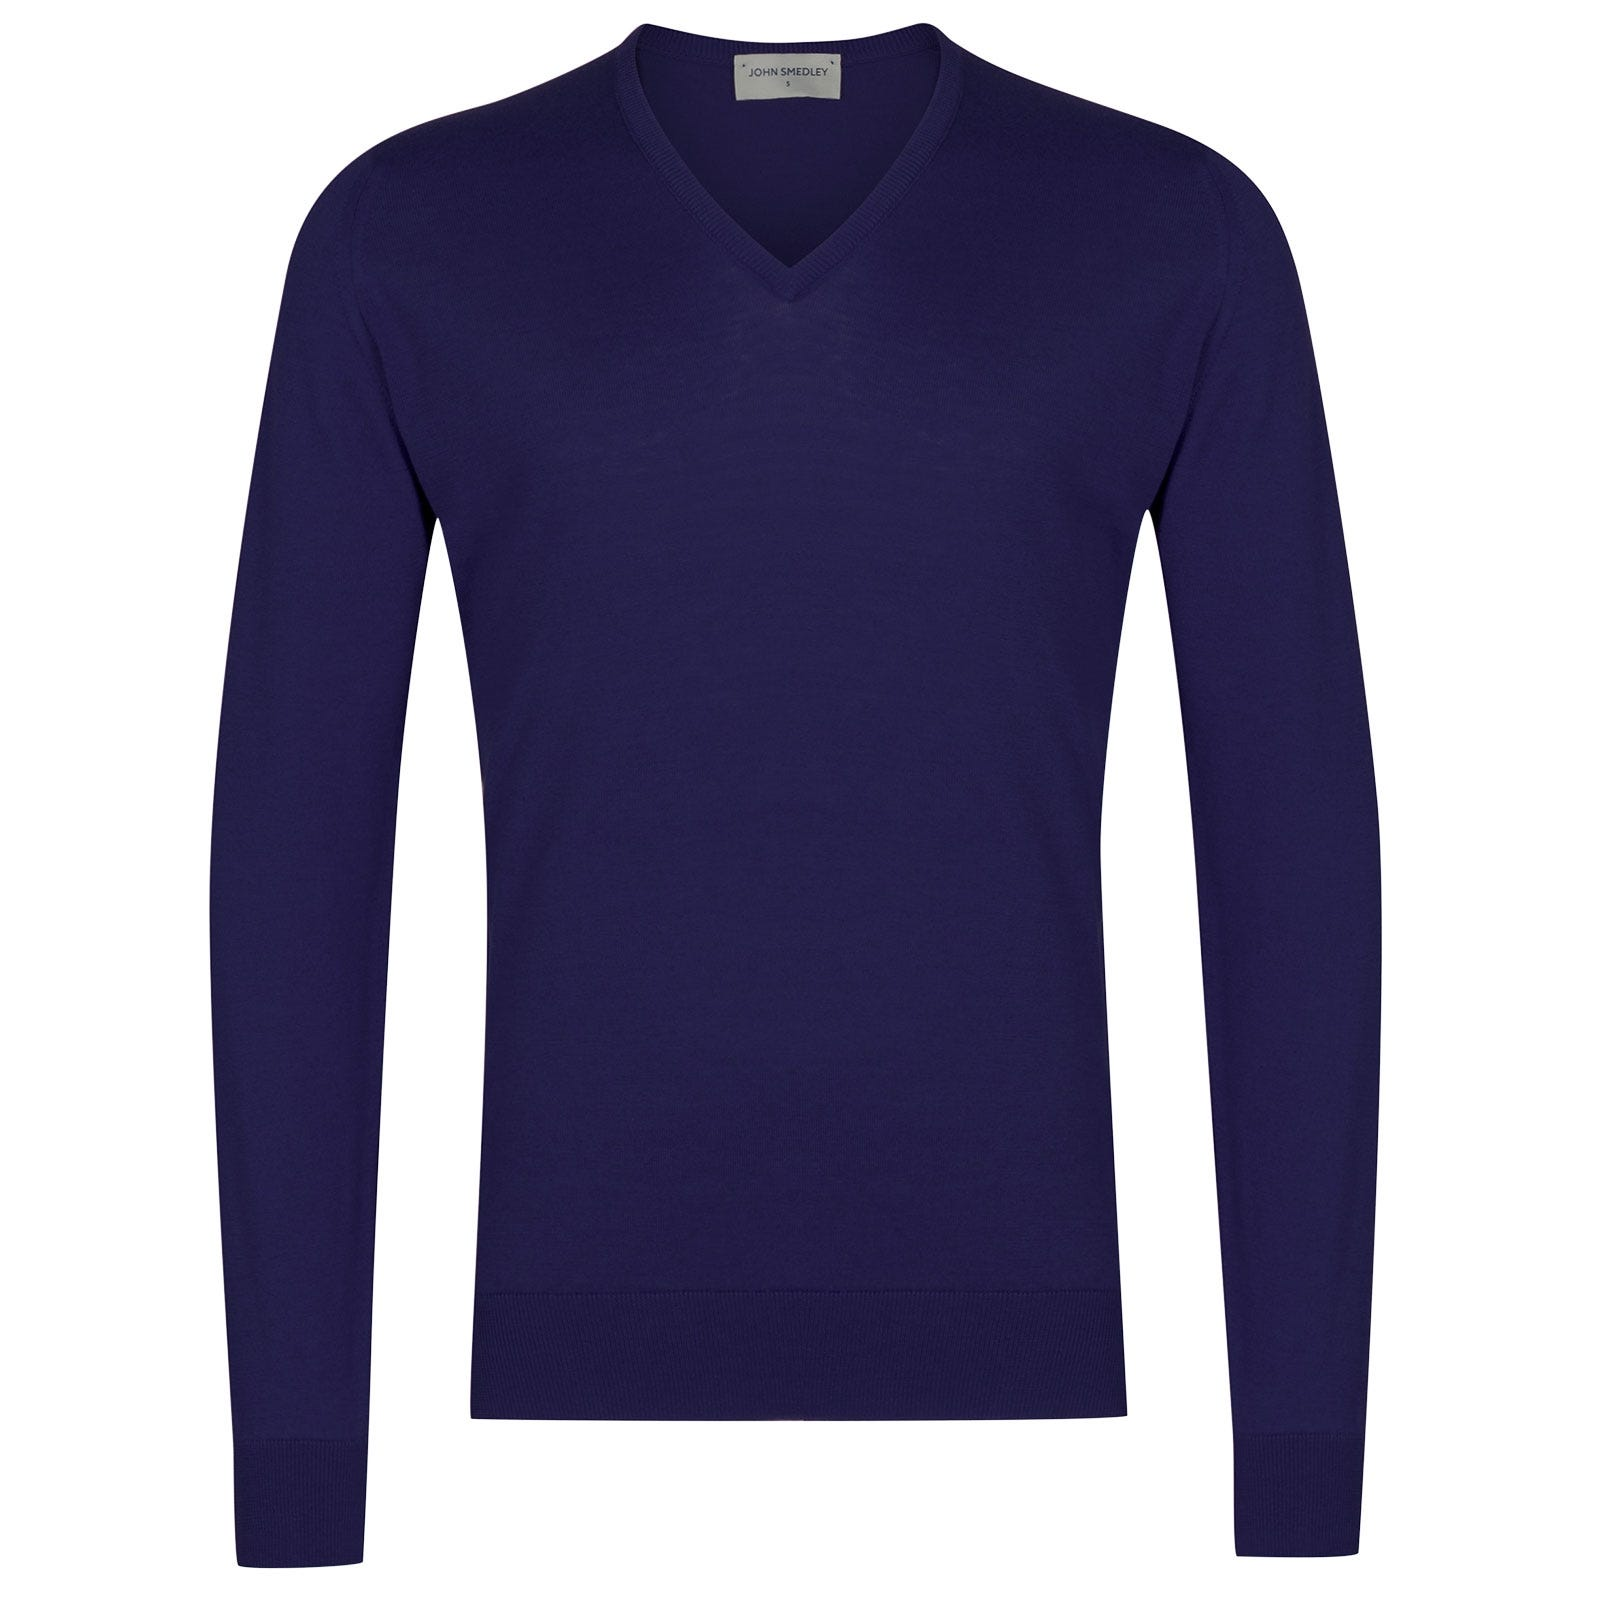 John Smedley Woburn Sea Island Cotton Pullover in Serge Blue-XL